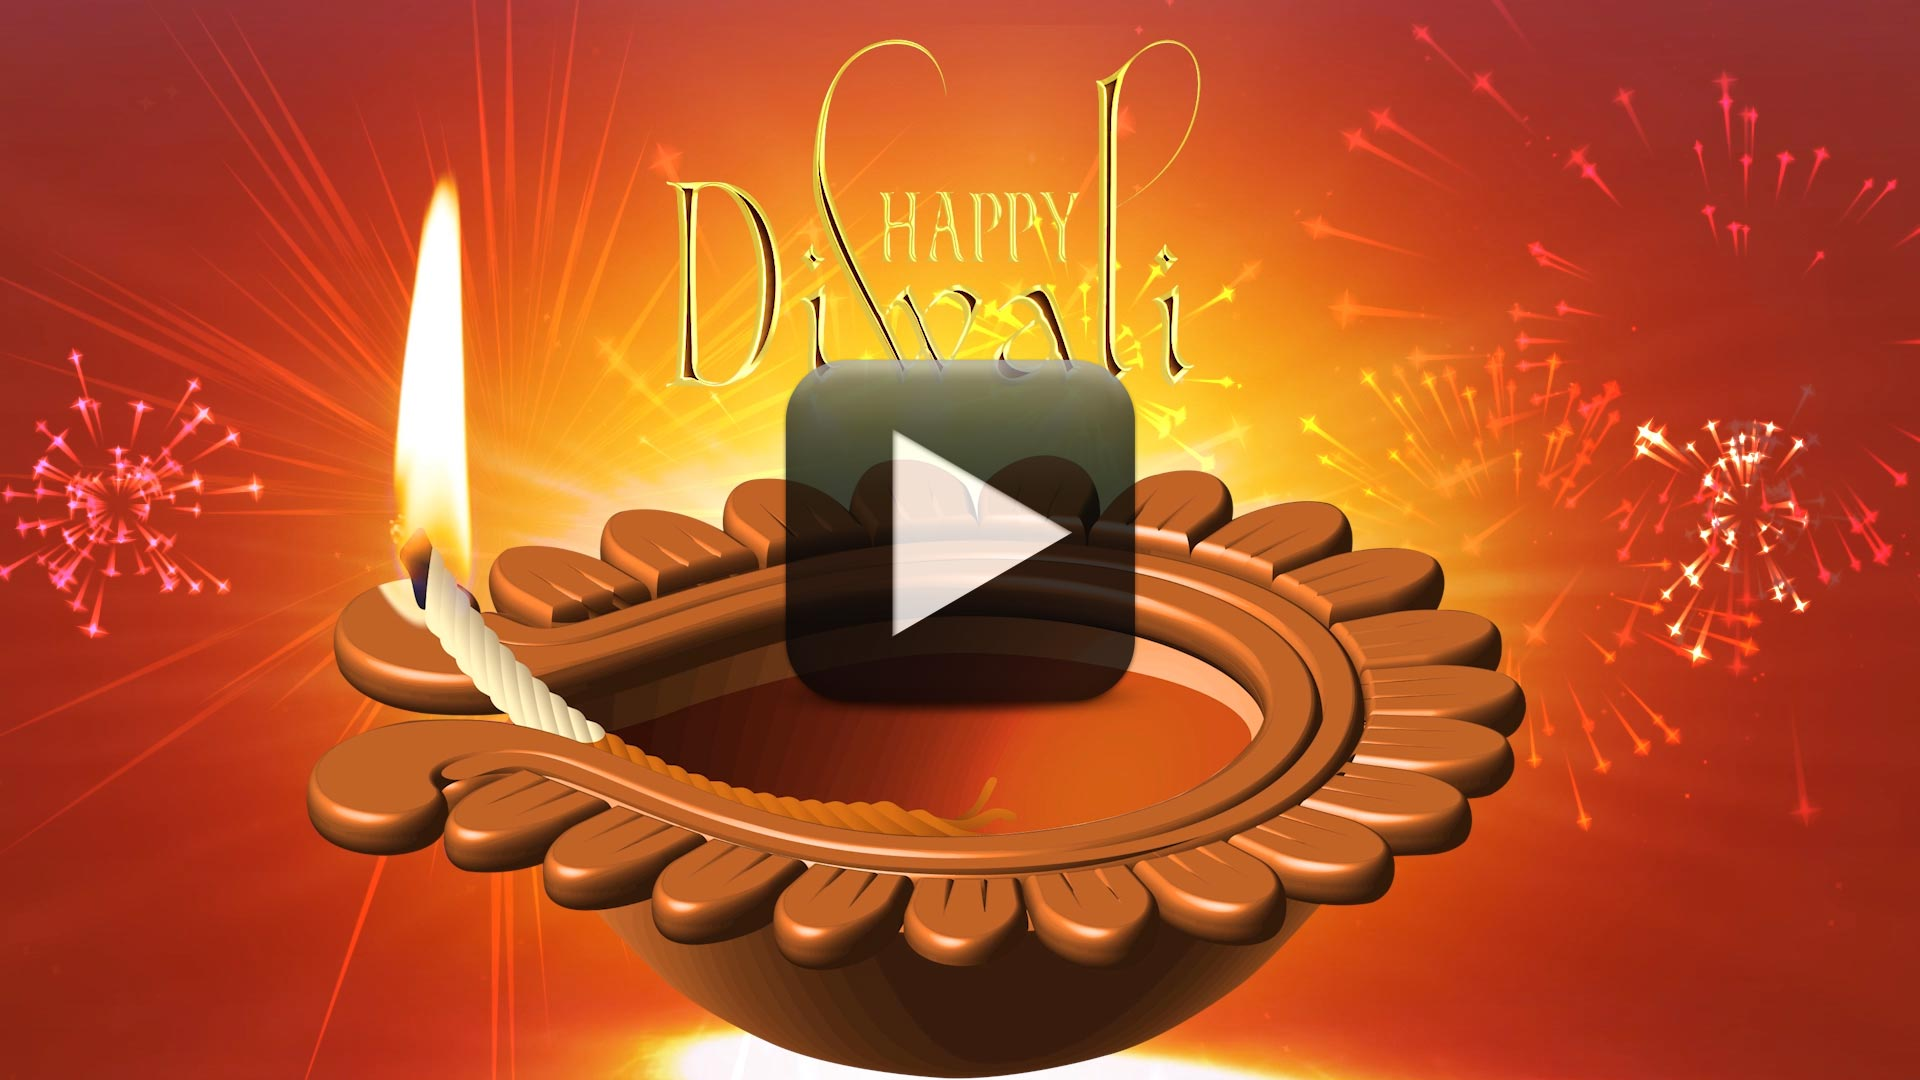 Happy diwali motion graphics-animated background video | all.